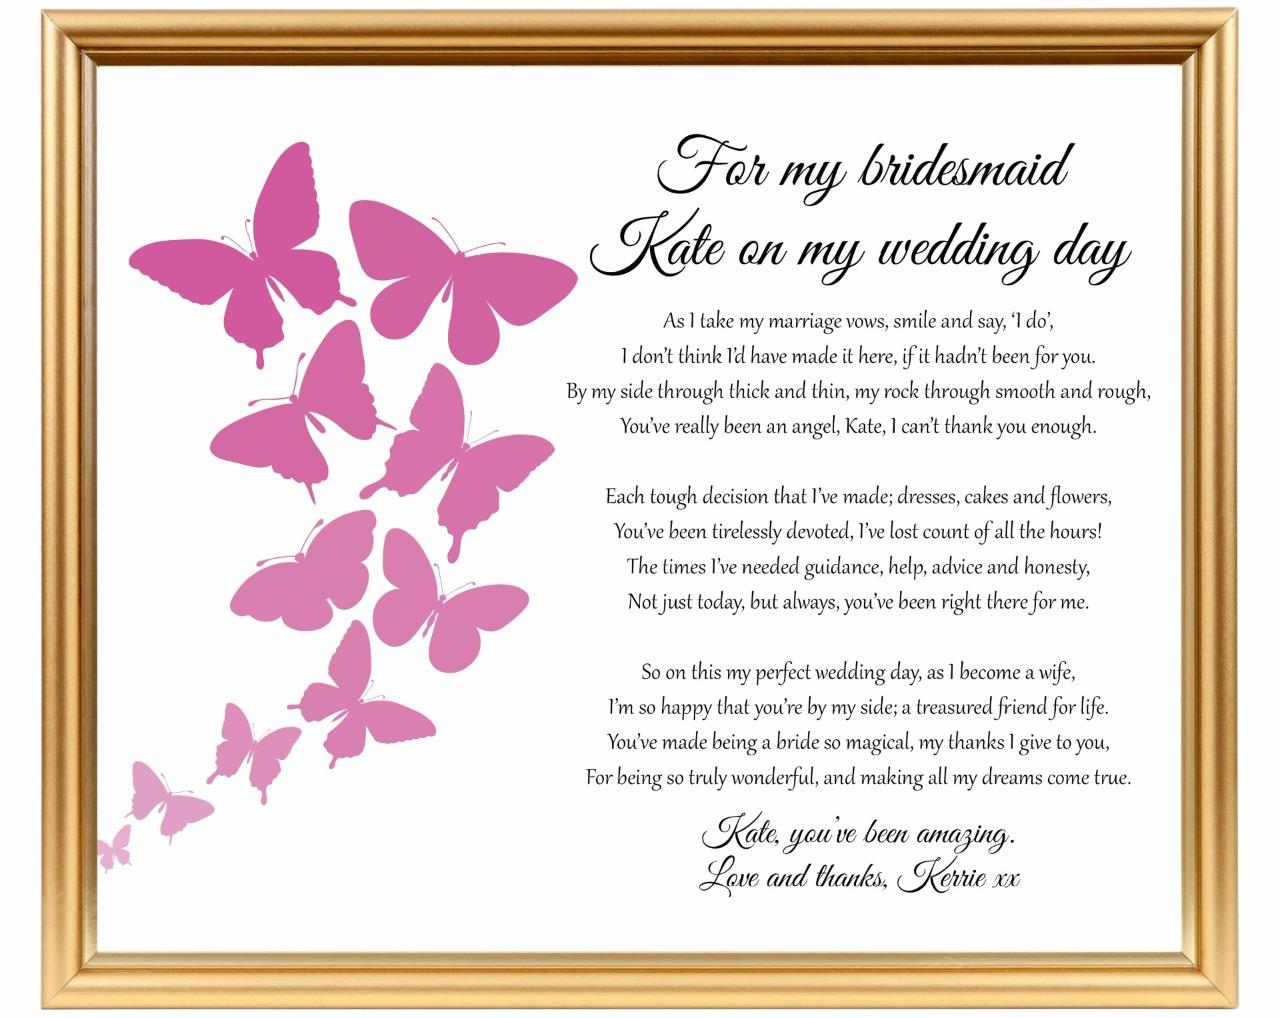 Bridesmaid Thank You Poem